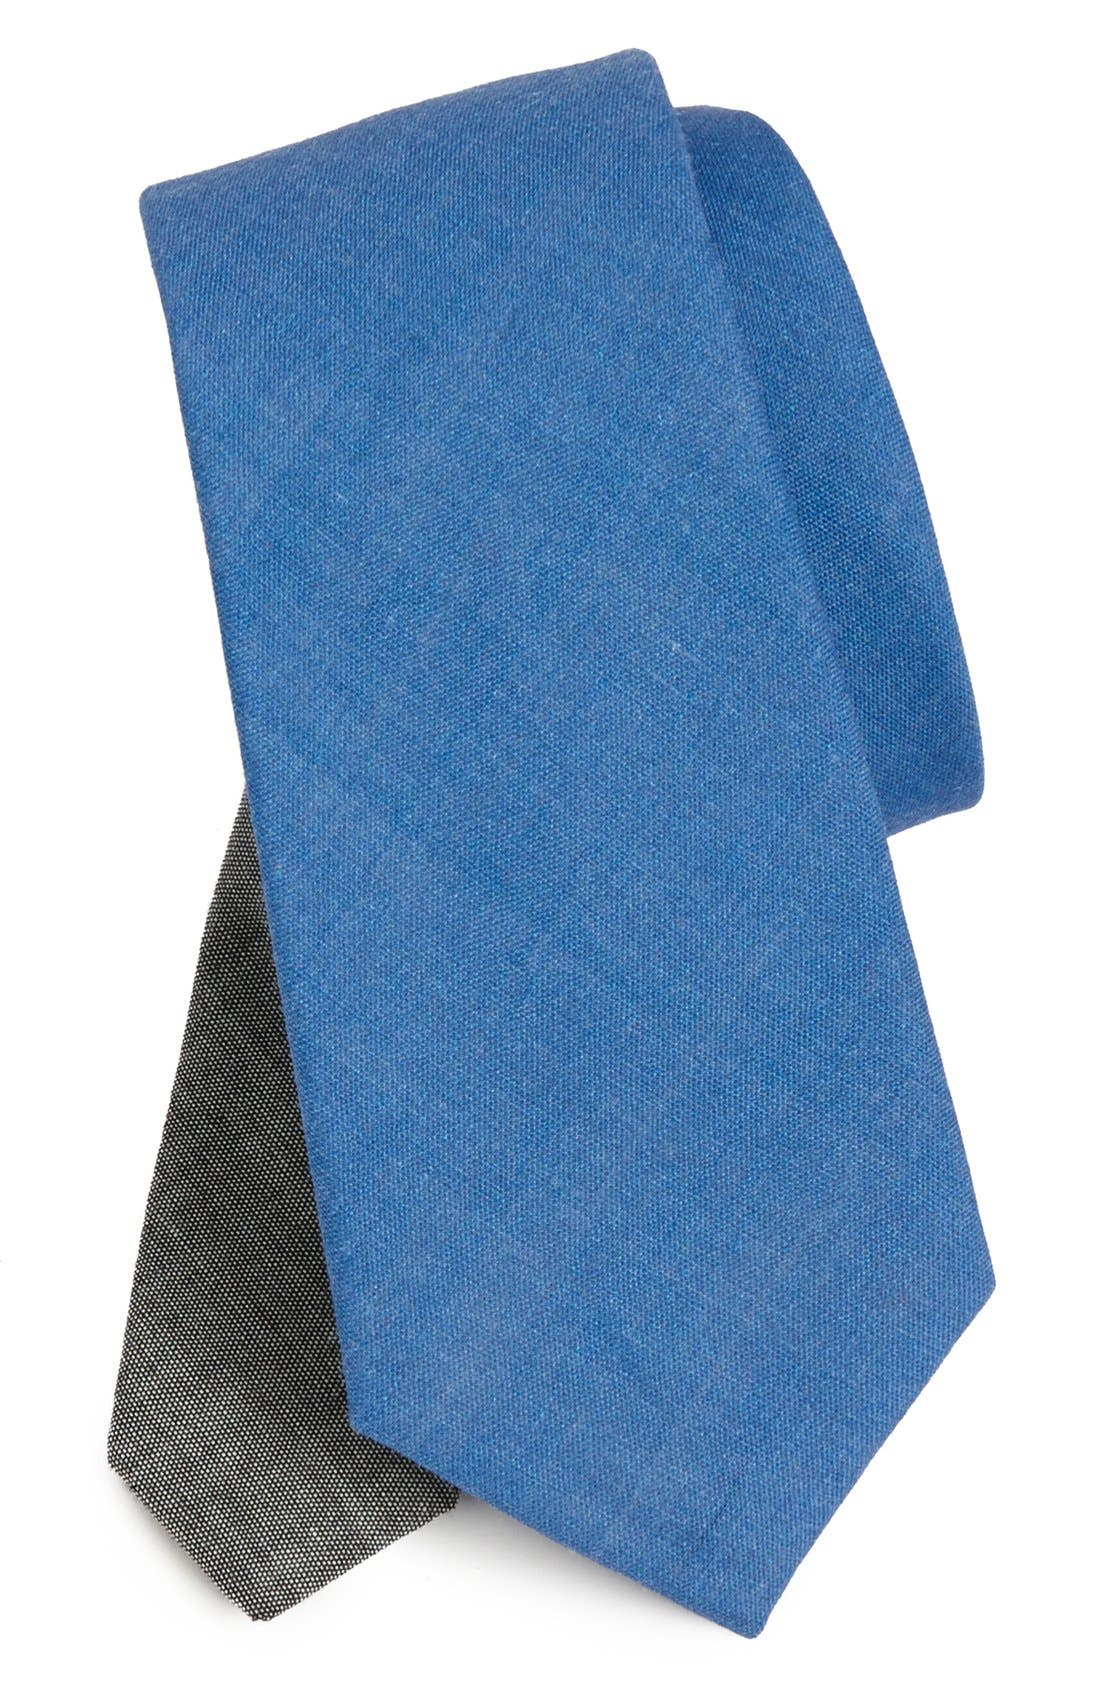 Alternate Image 1 Selected - EDIT by The Tie Bar Solid Linen Tie (Nordstrom Exclusive)